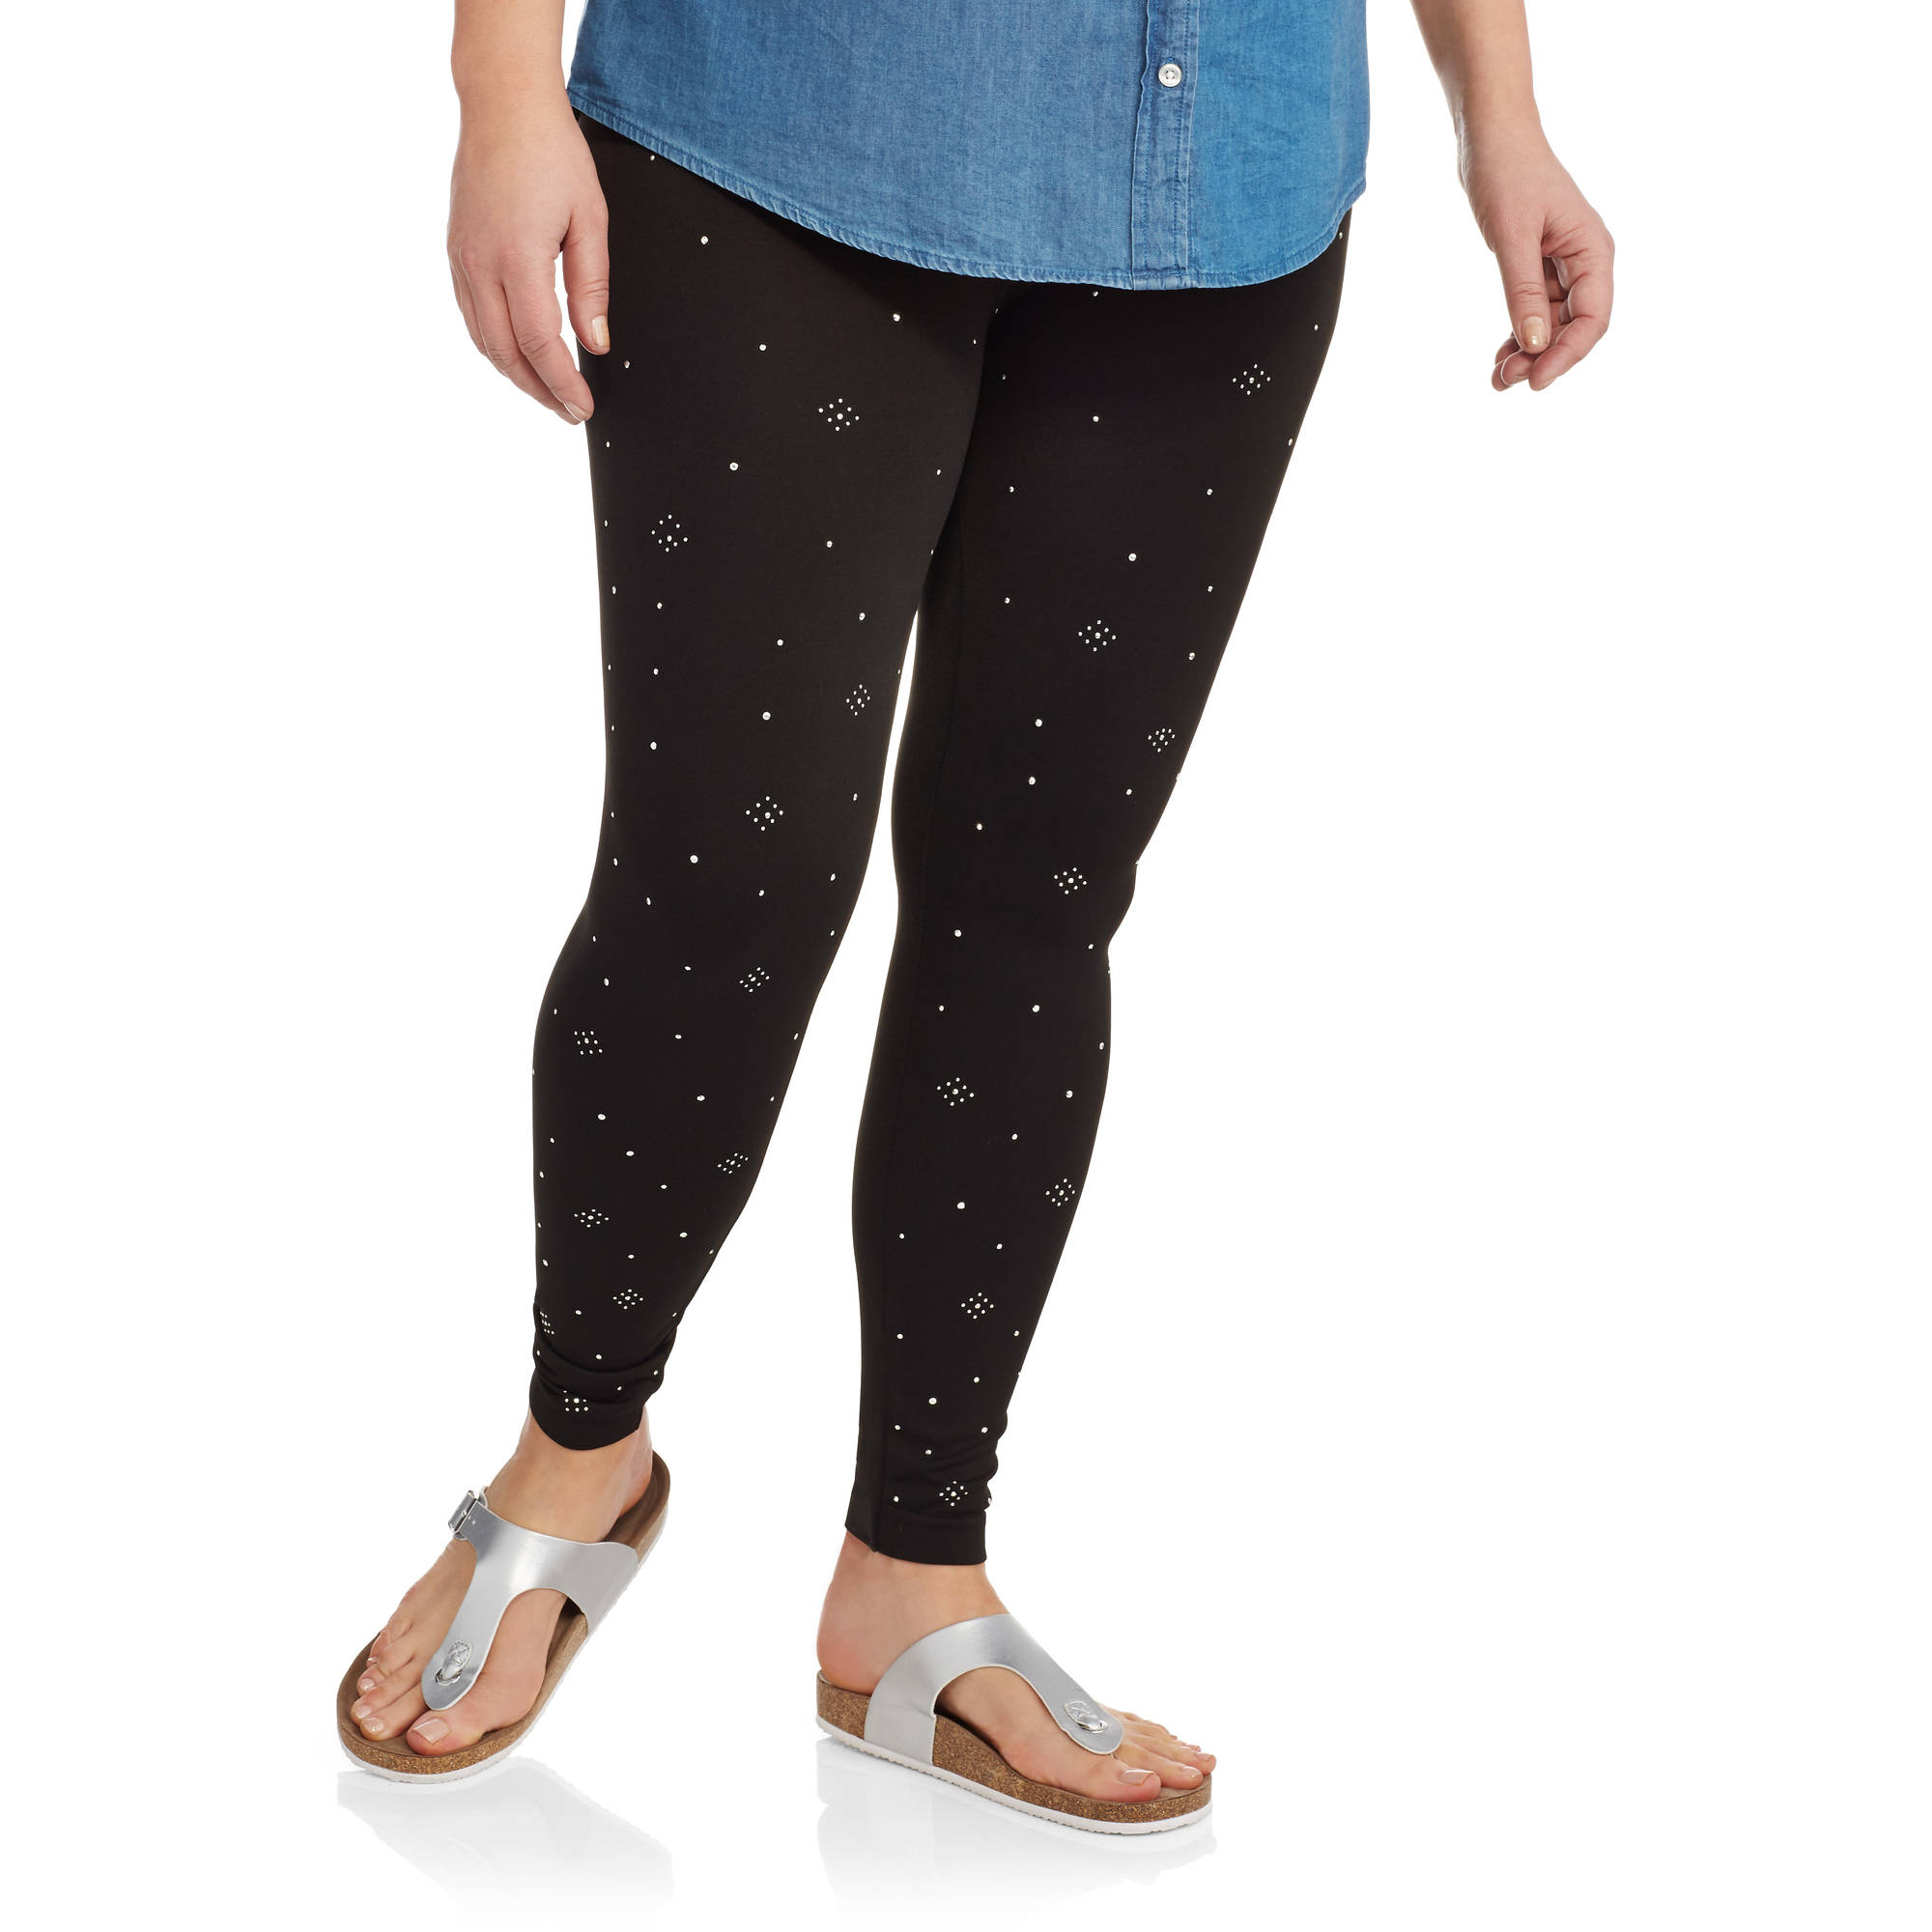 Eye Candy Women's Plus Front Embelllished Leggings